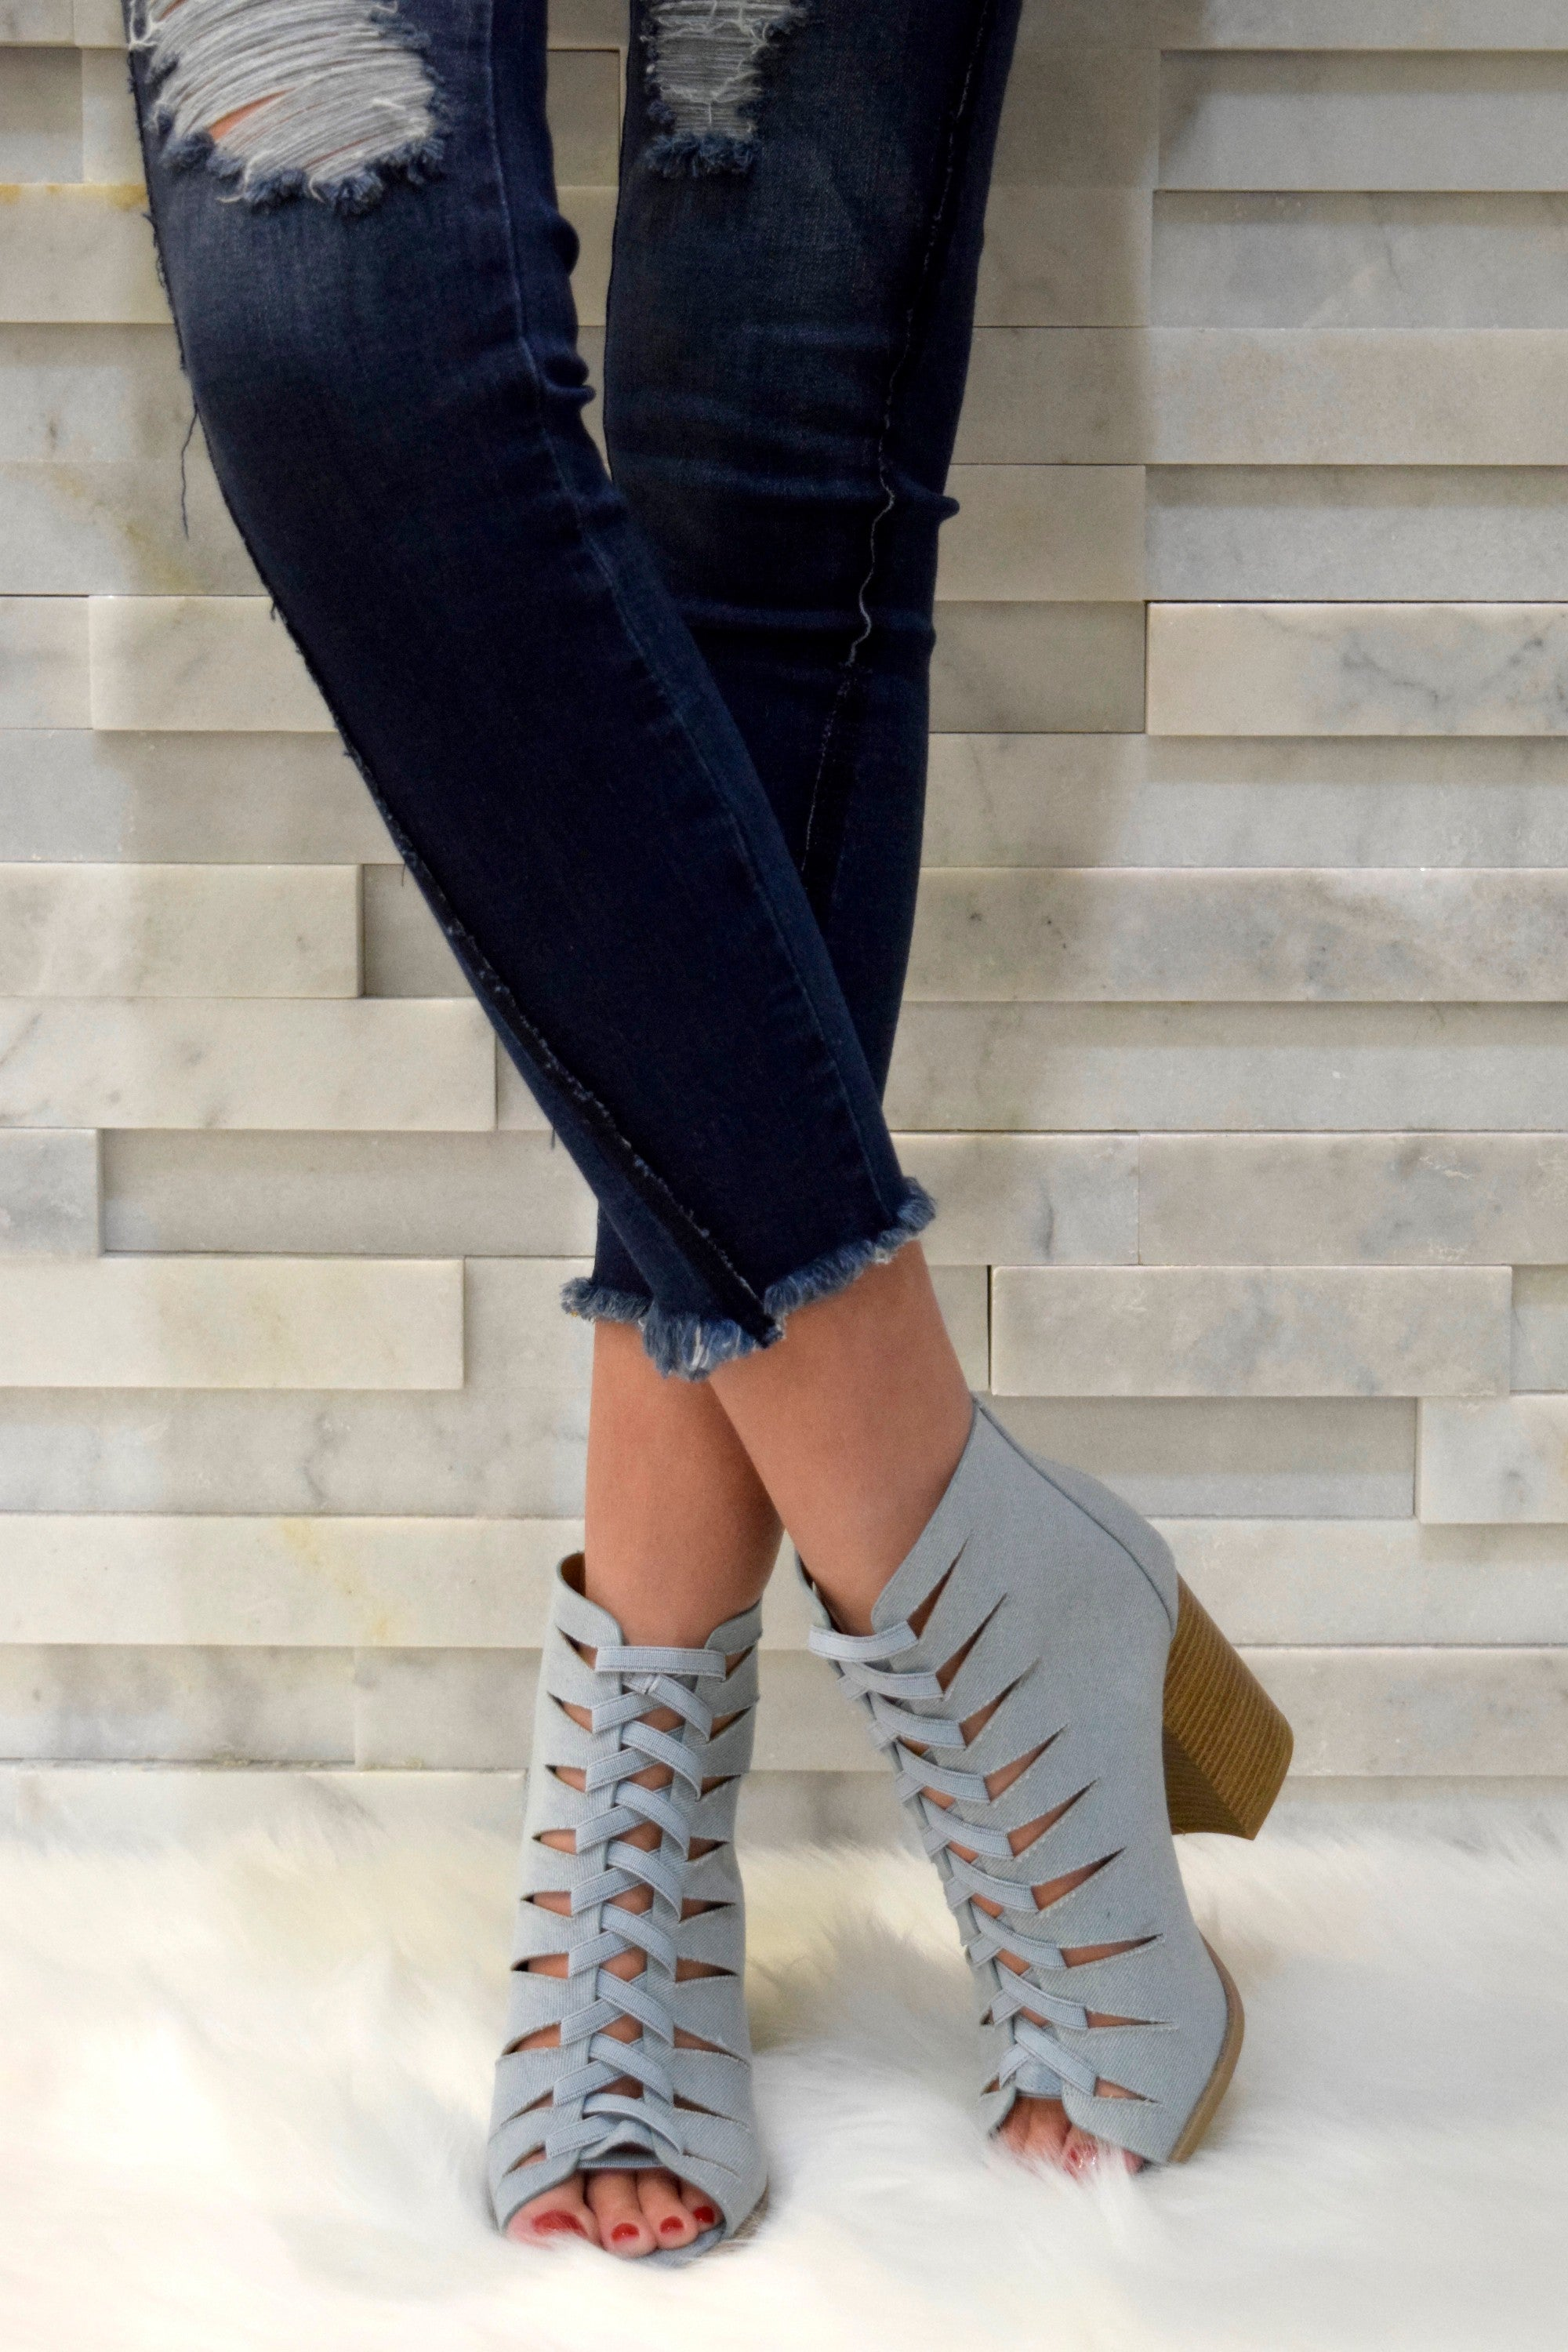 c7979b5c1f2 CROSSING PATHS DENIM BLOCK HEELS – Apricot Lane Boutique - Des Moines